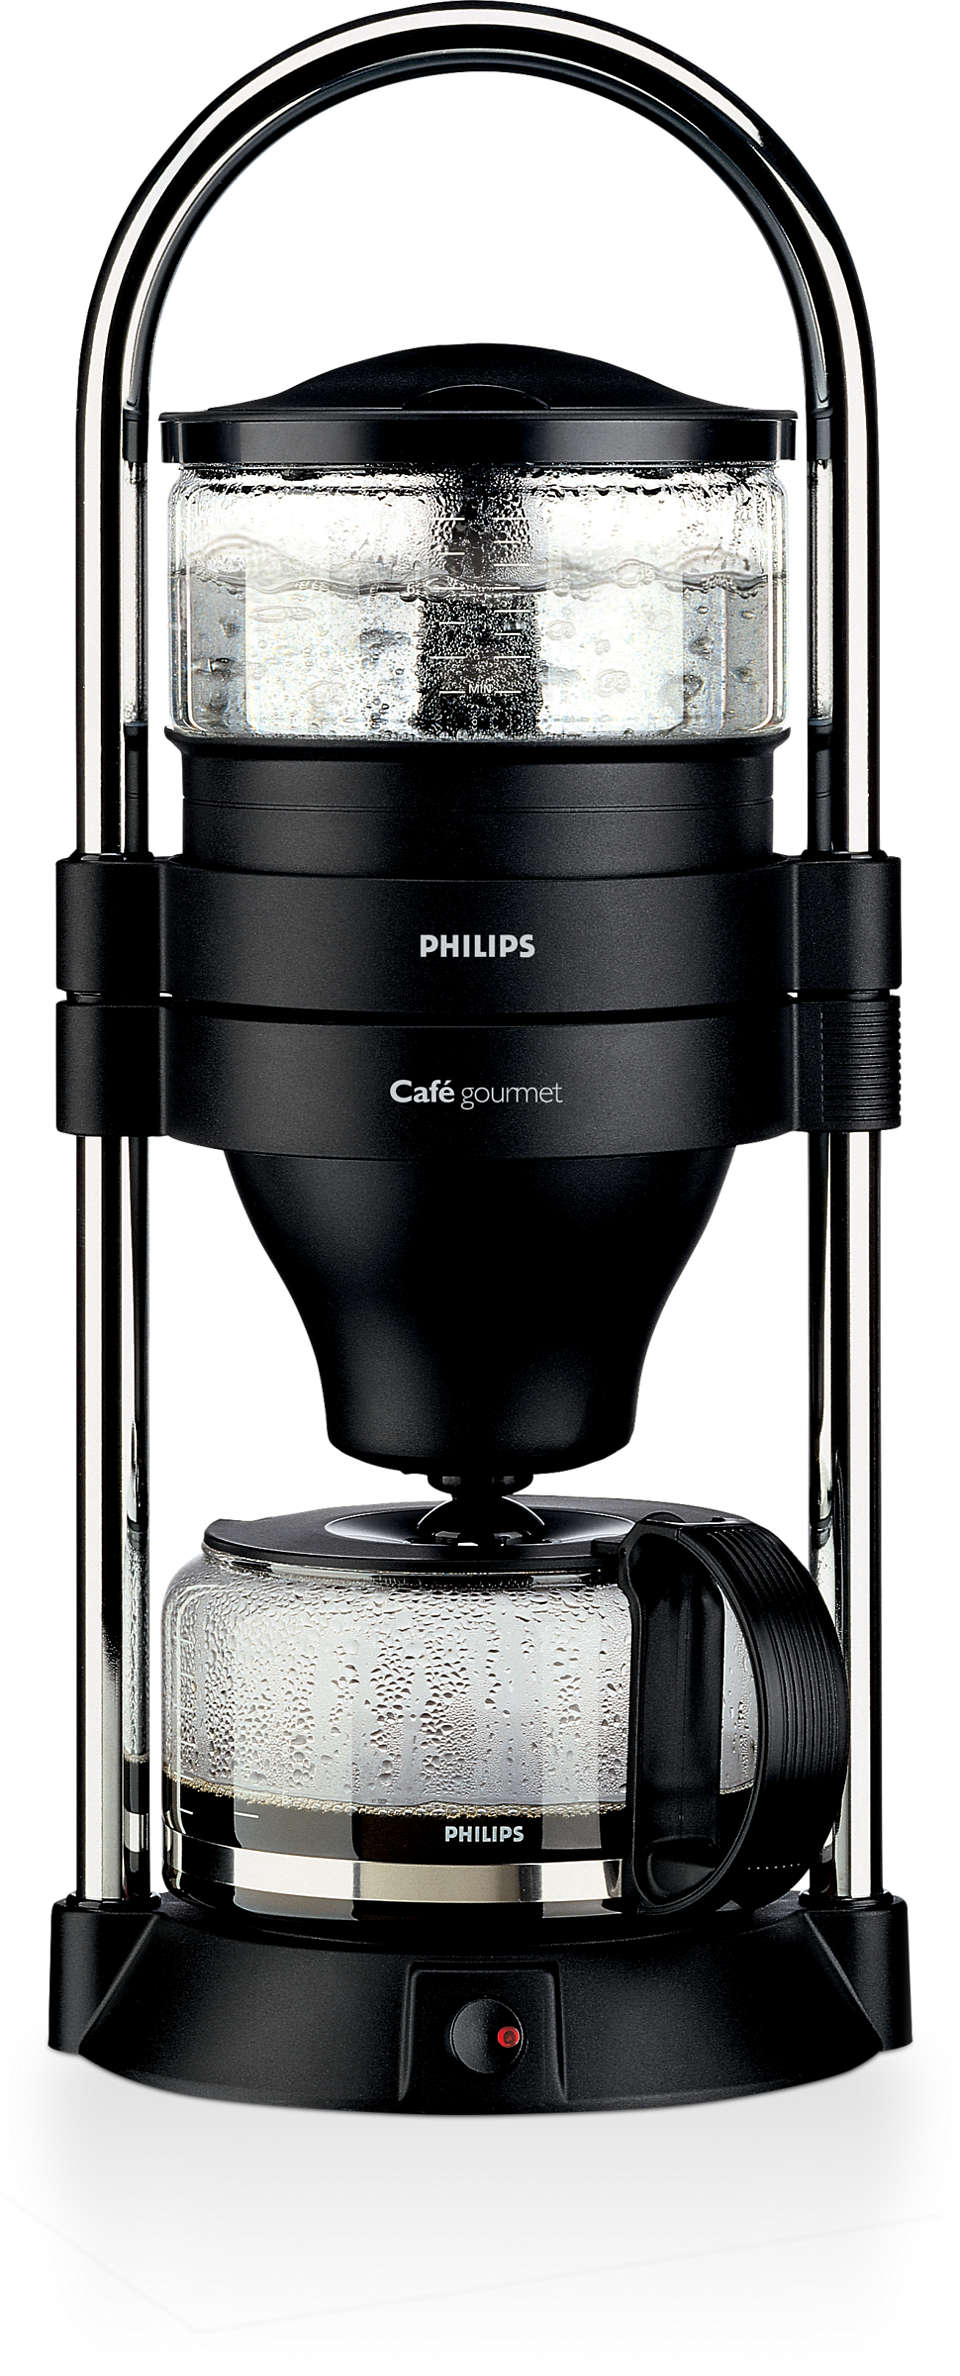 Designed to brew the best tasting filter coffee